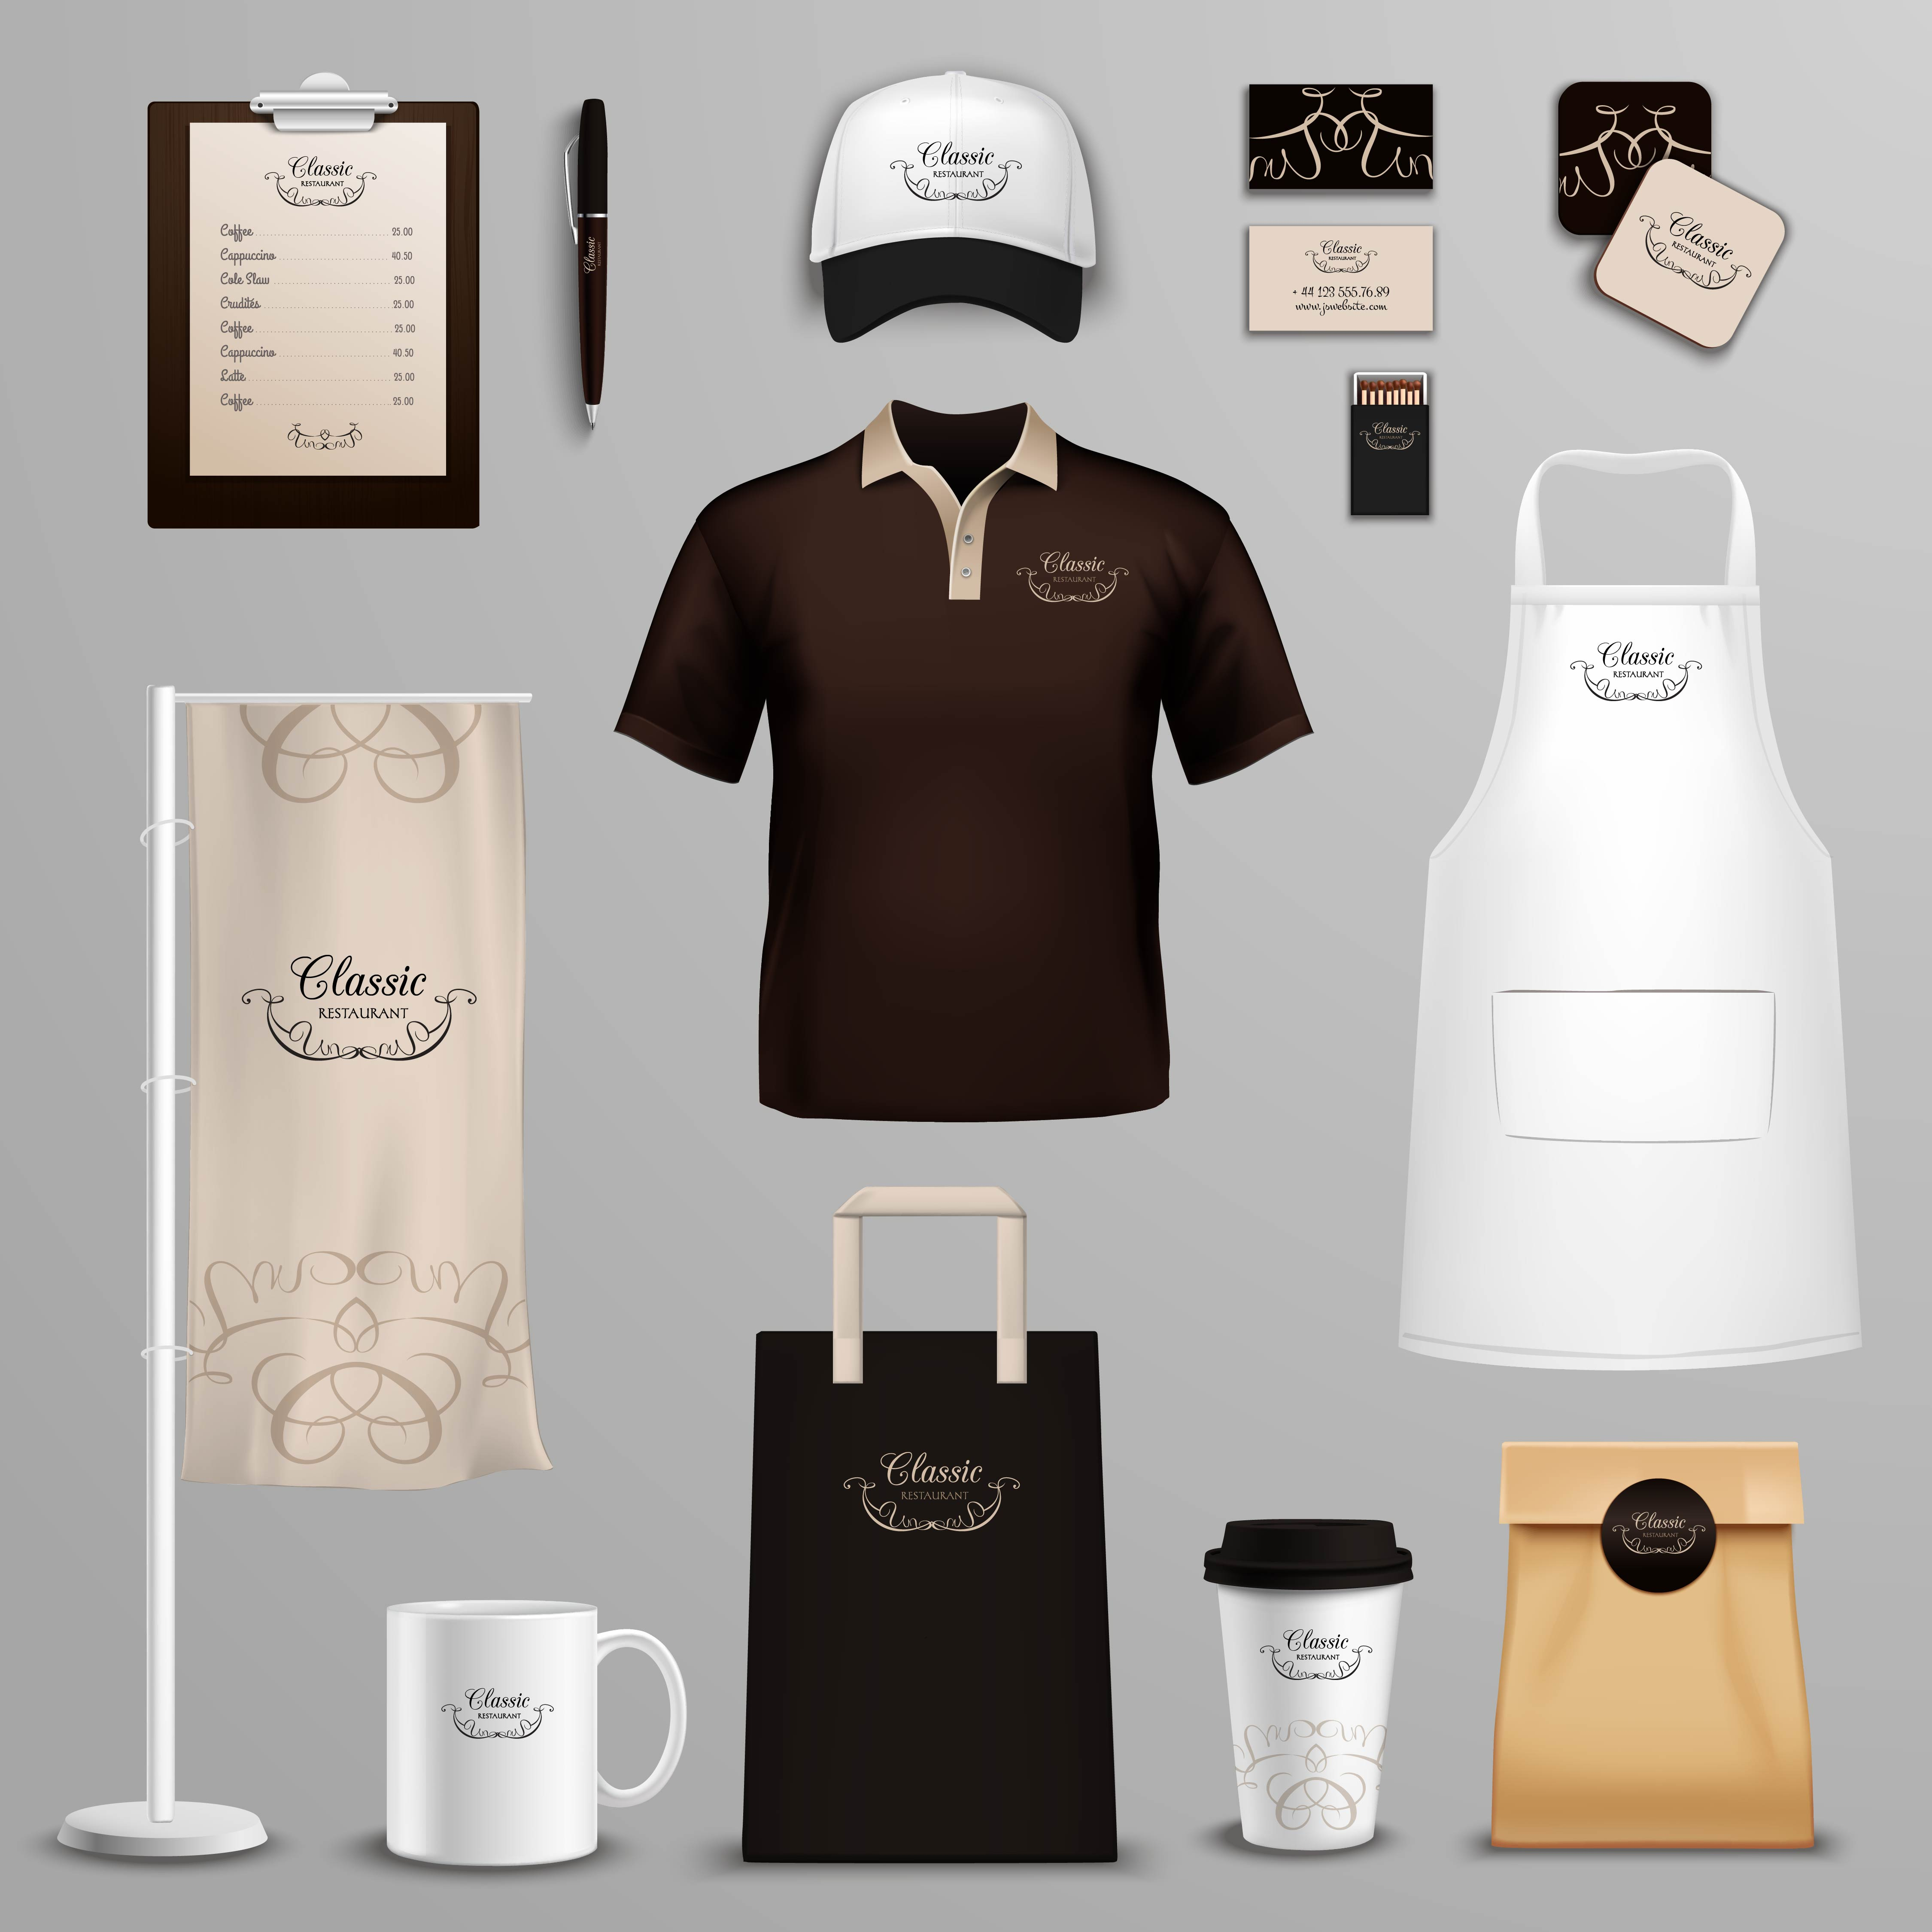 Coffee Logo Collection: Restaurant Cafe Corporate Identity Icons Set 466847